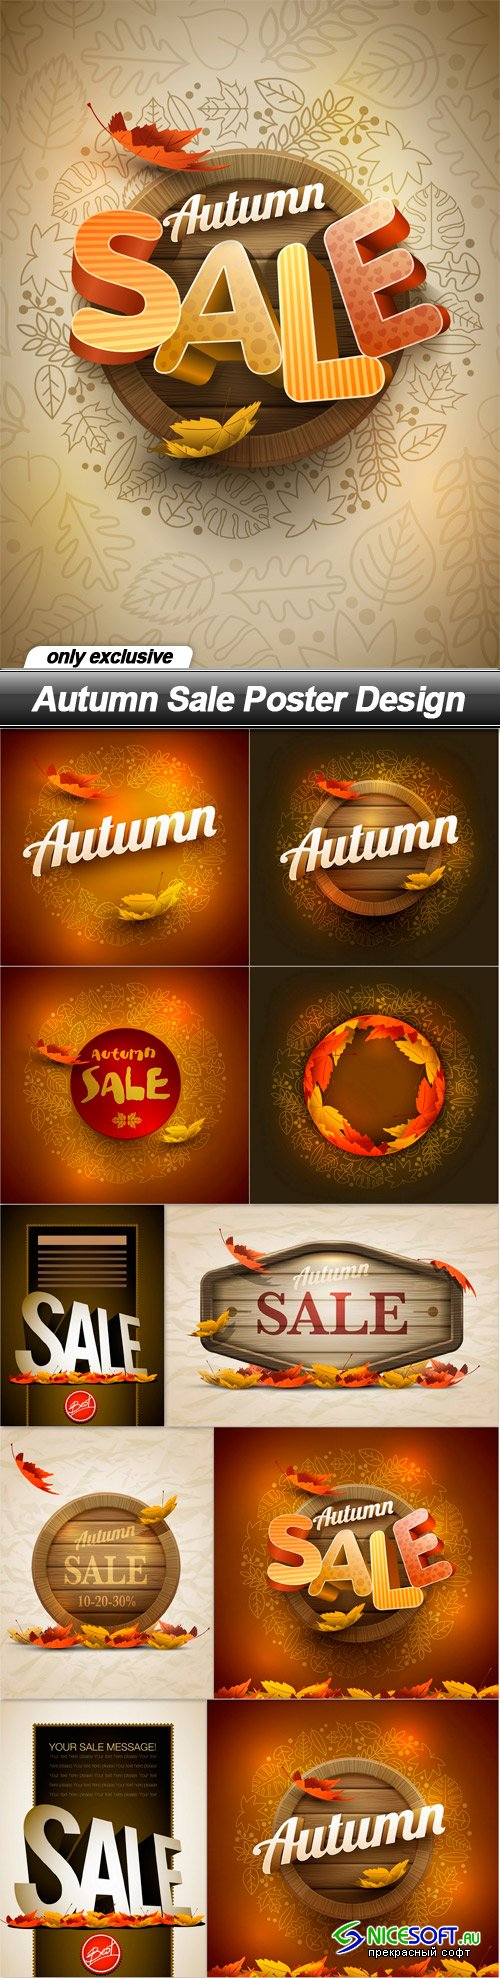 Autumn Sale Poster Design